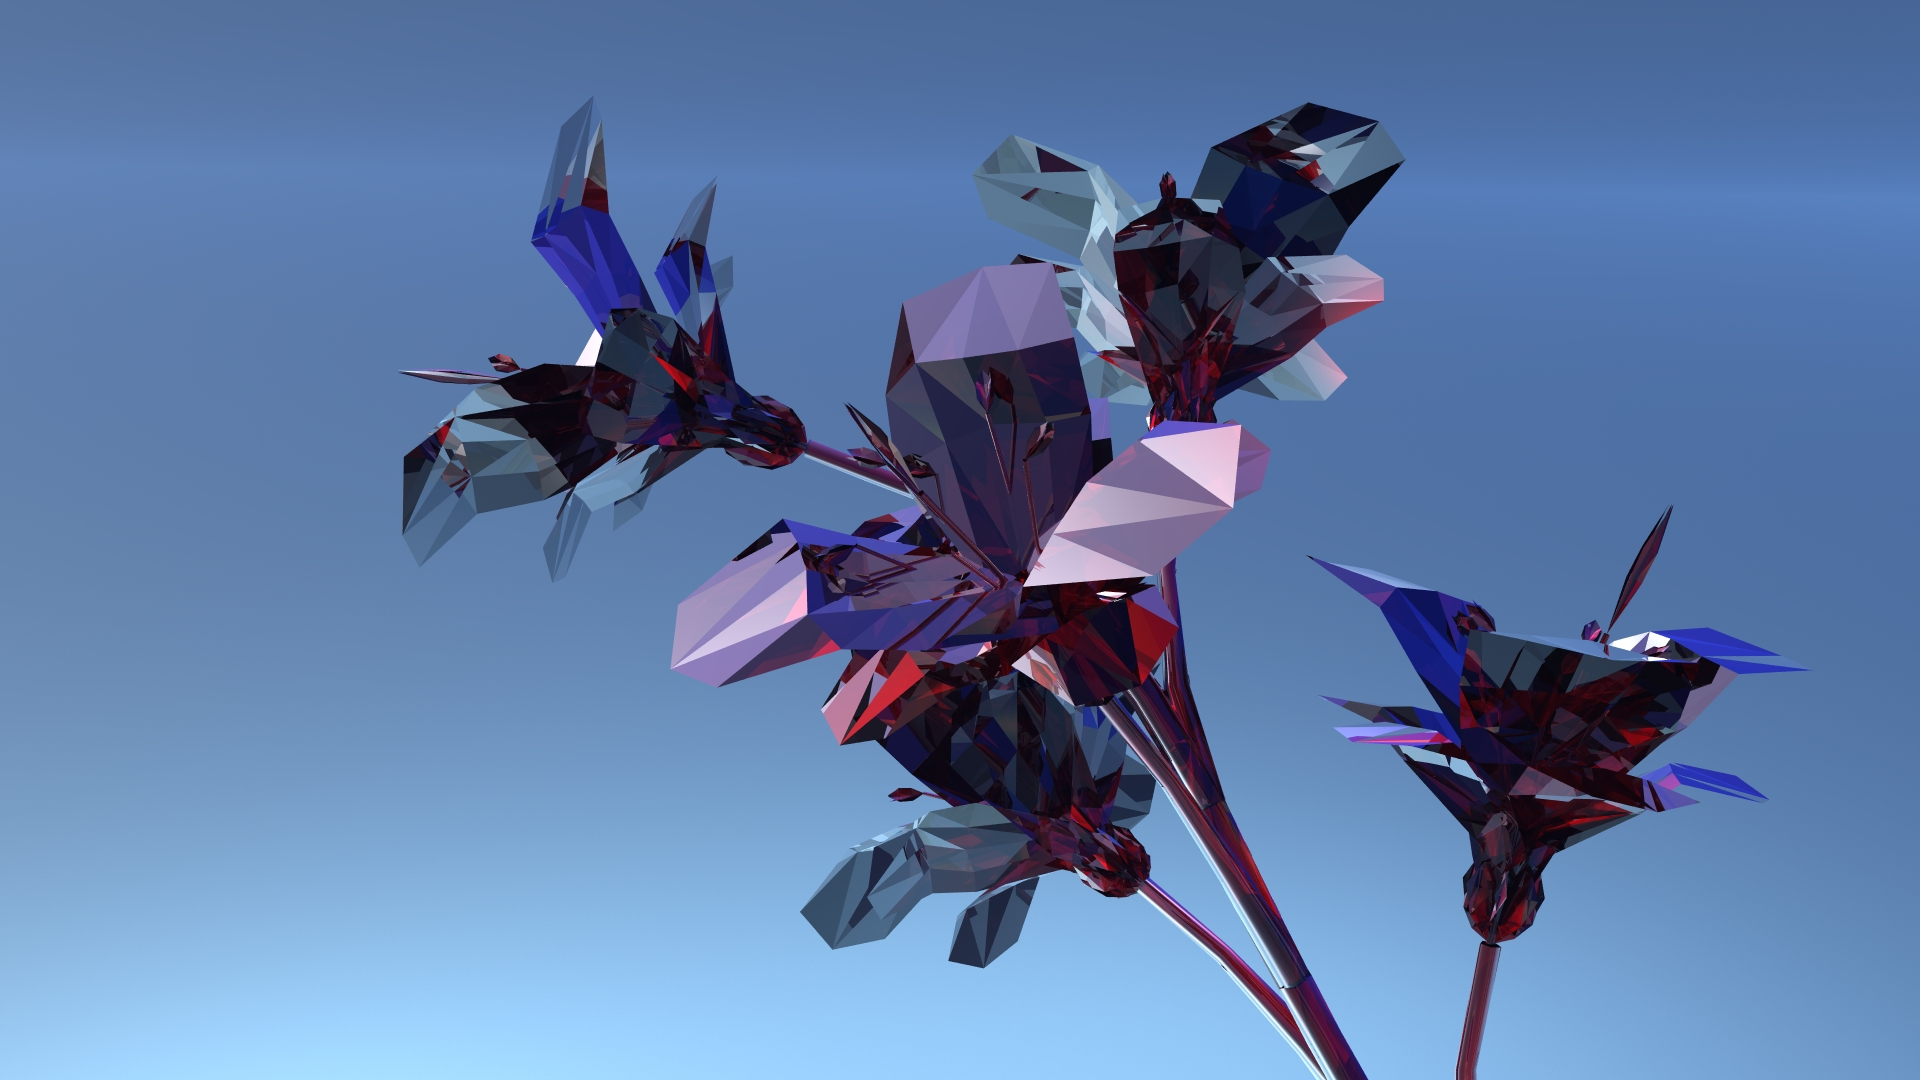 Diamond flowers by Topas2012